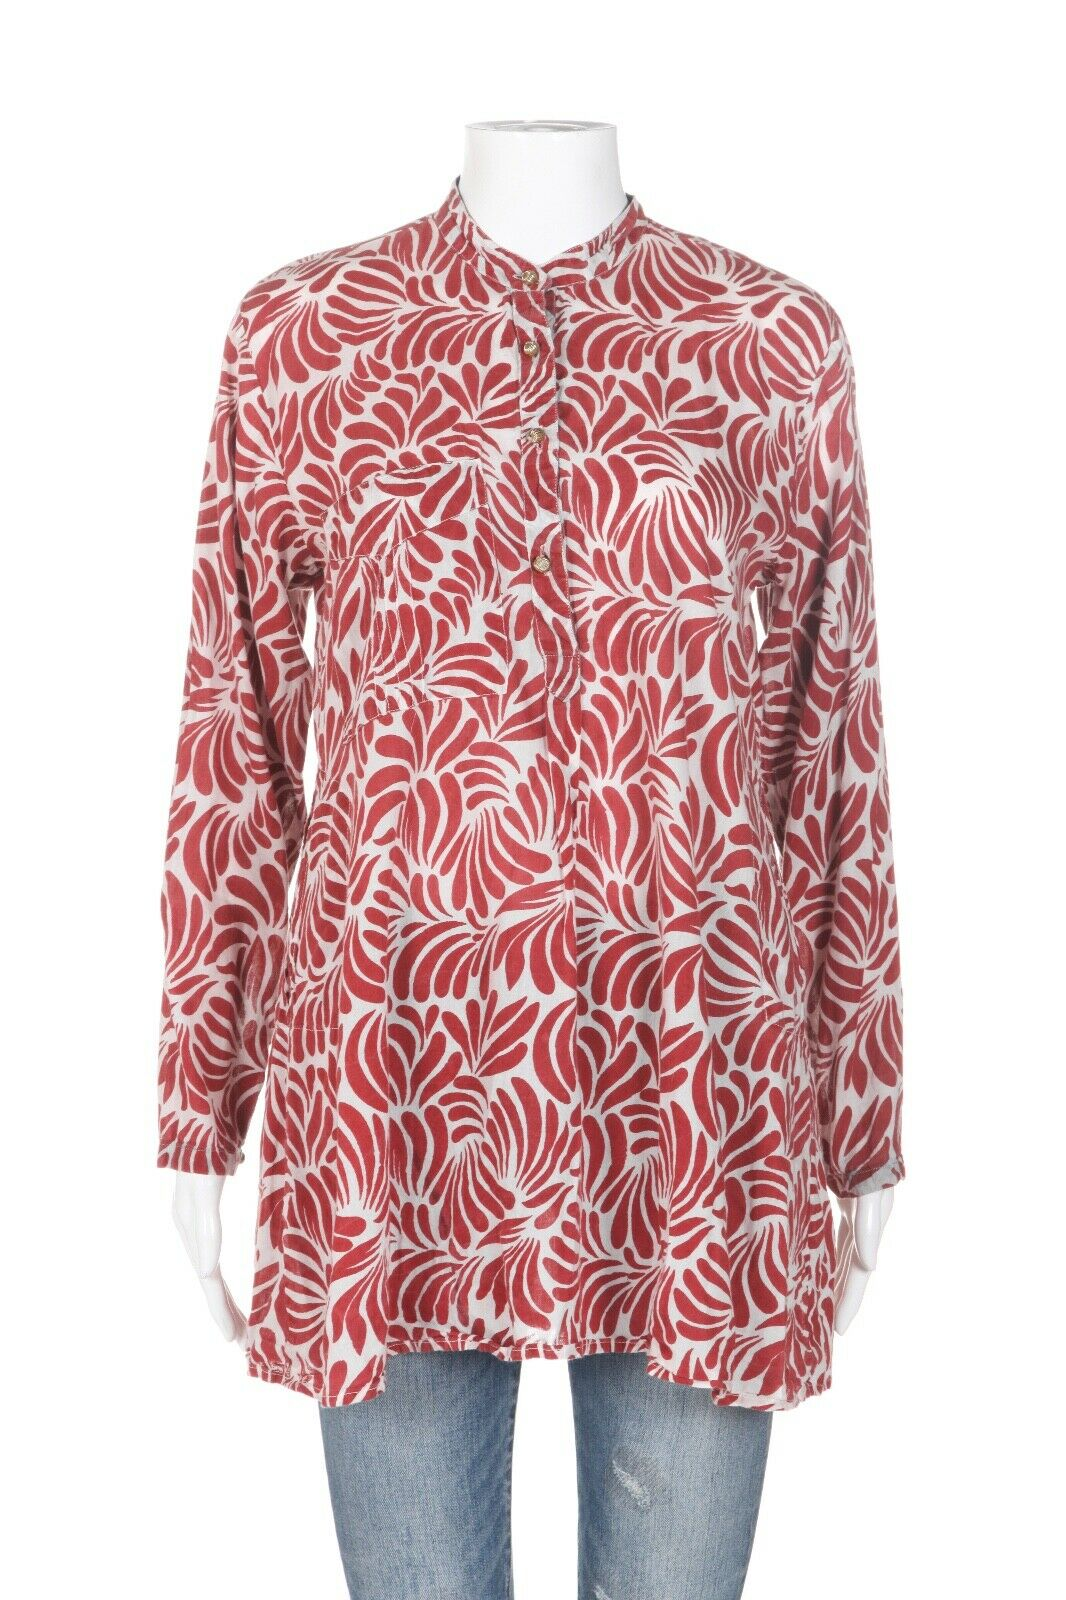 ROBERTA ROLLER RABBIT Printed Tunic Top Size XS